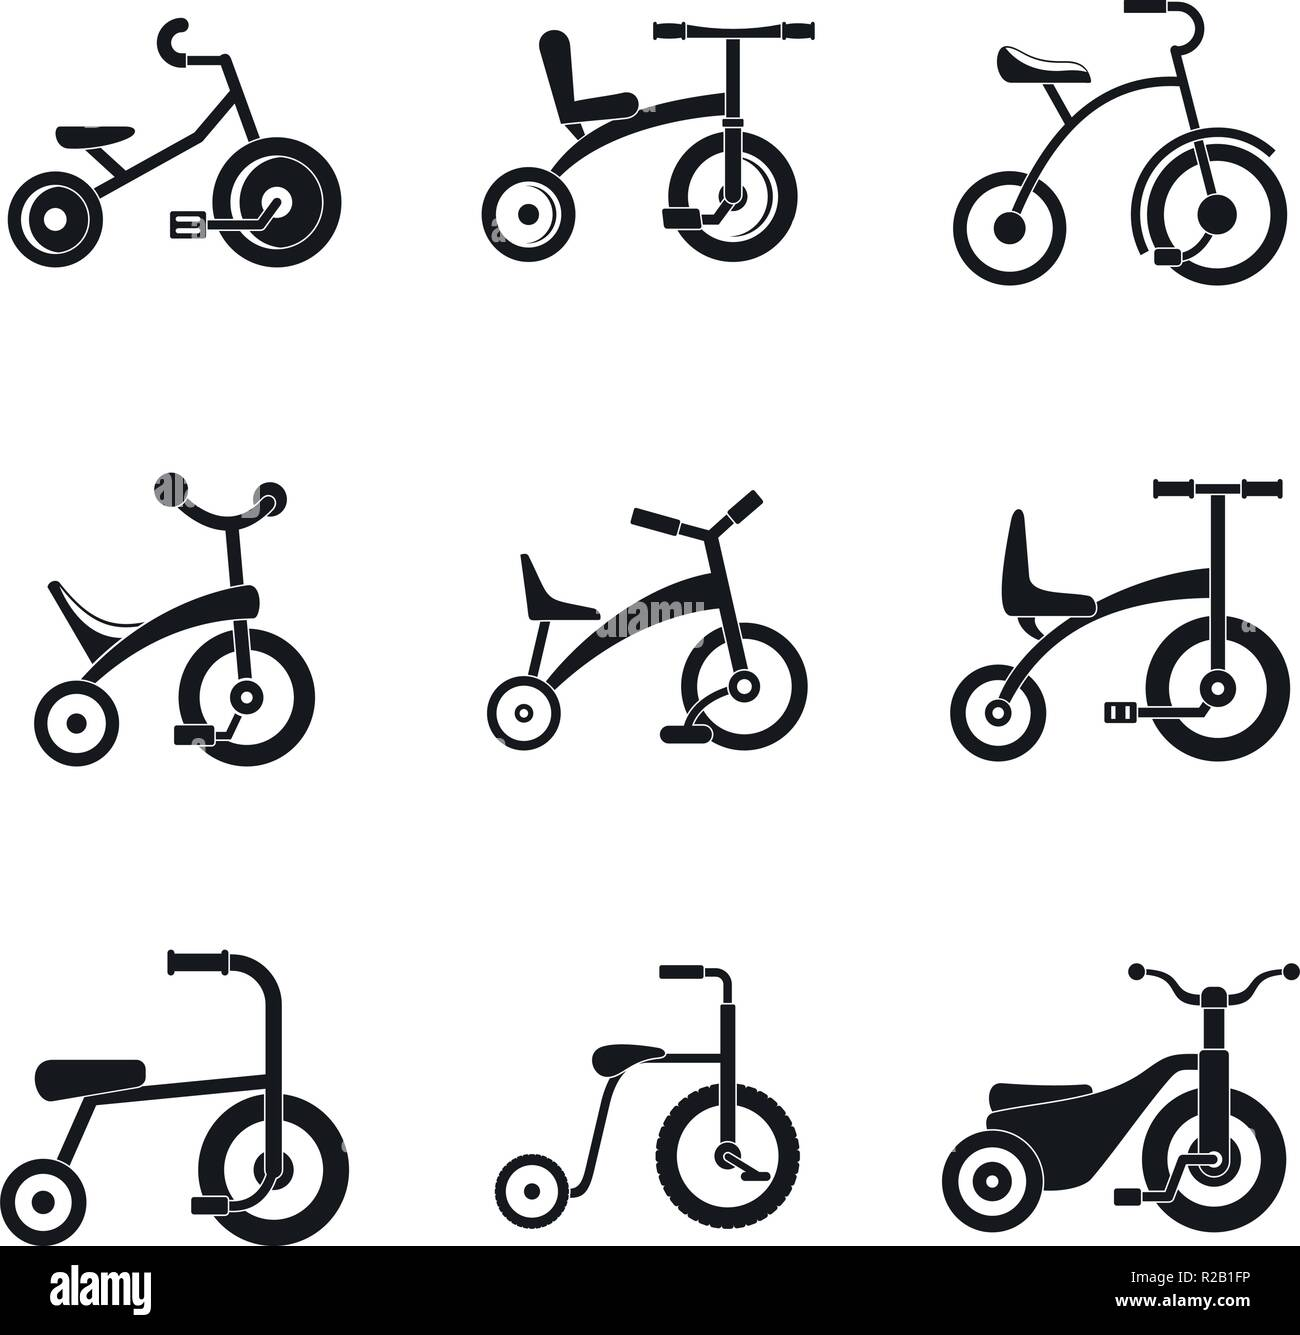 Tricycle Bicycle Bike Wheel Icons Set Simple Illustration Of 9 Tricycle Bicycle Bike Wheel Vector Icons For Web Stock Vector Image Art Alamy